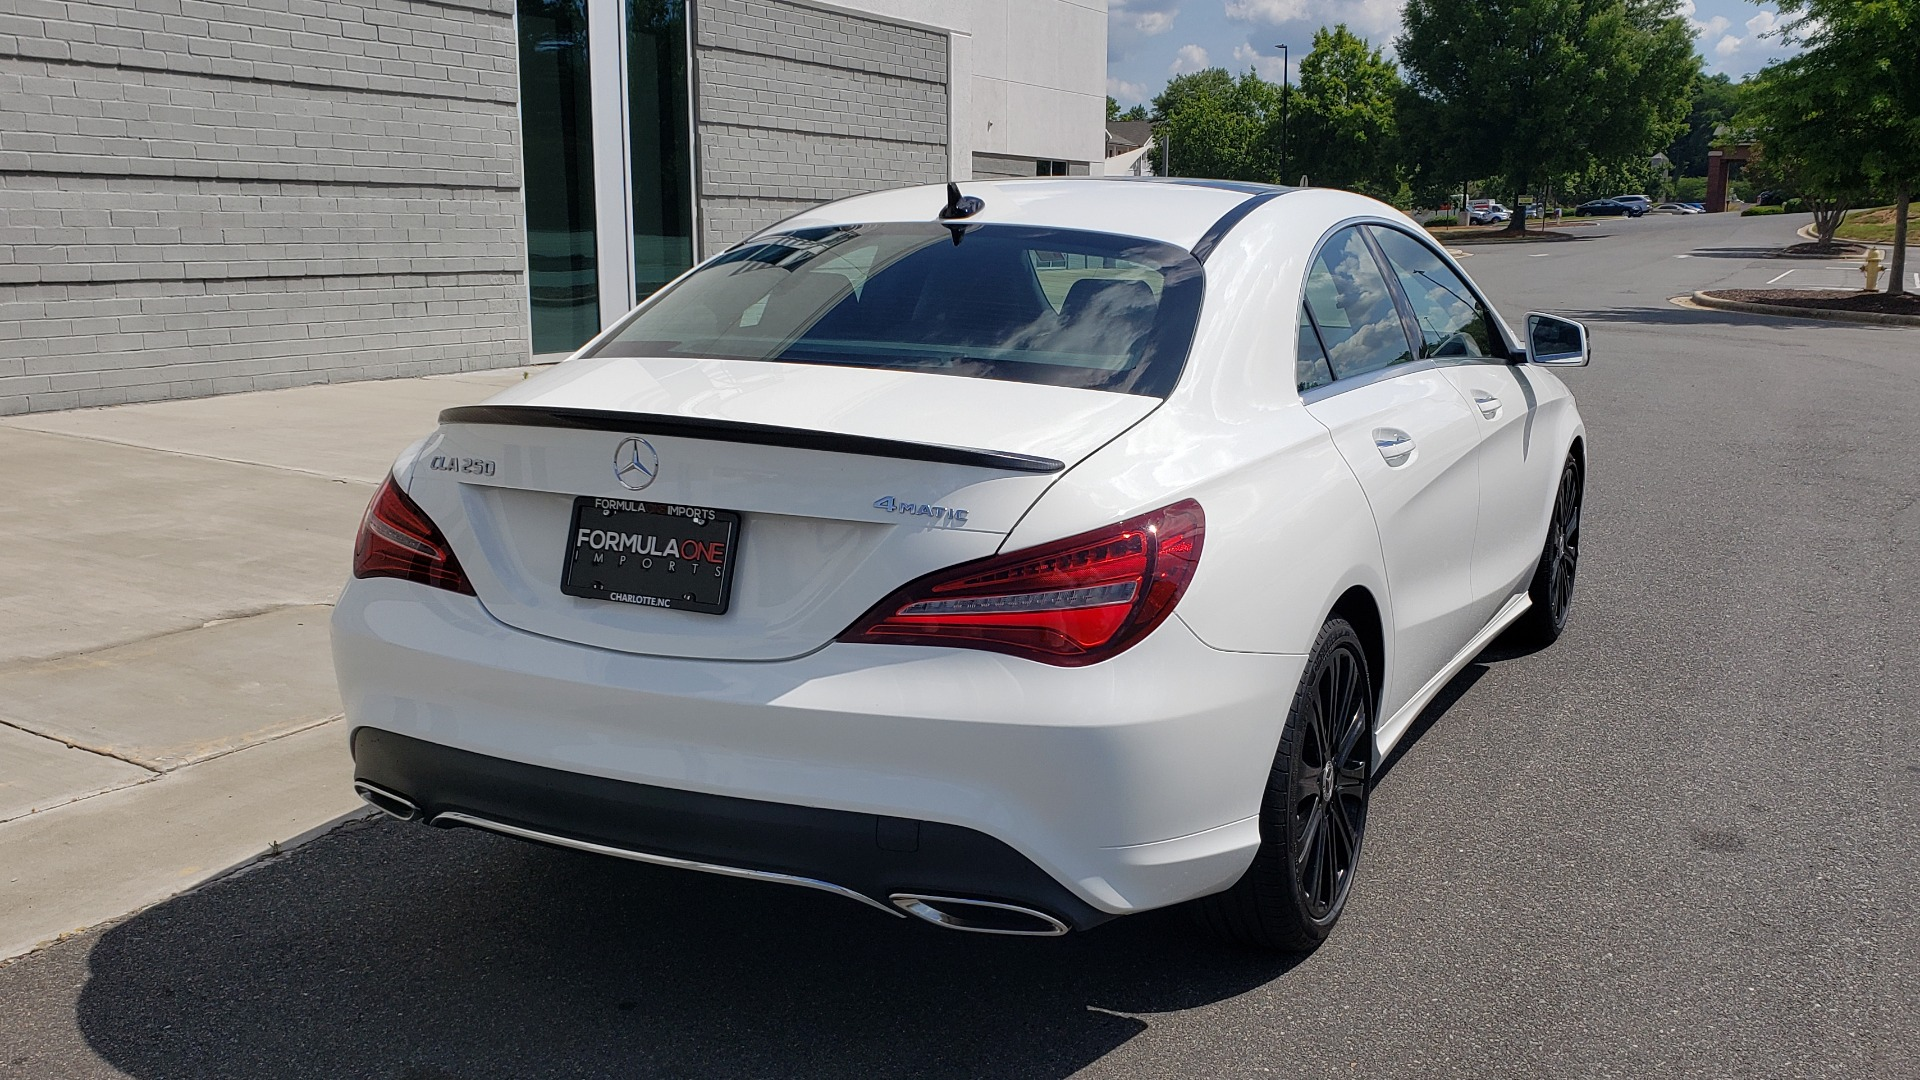 Used 2018 Mercedes-Benz CLA 250 4MATIC COUPE / PREMIUM / PANO-ROOF / APPLE / REARVIEW for sale Sold at Formula Imports in Charlotte NC 28227 2